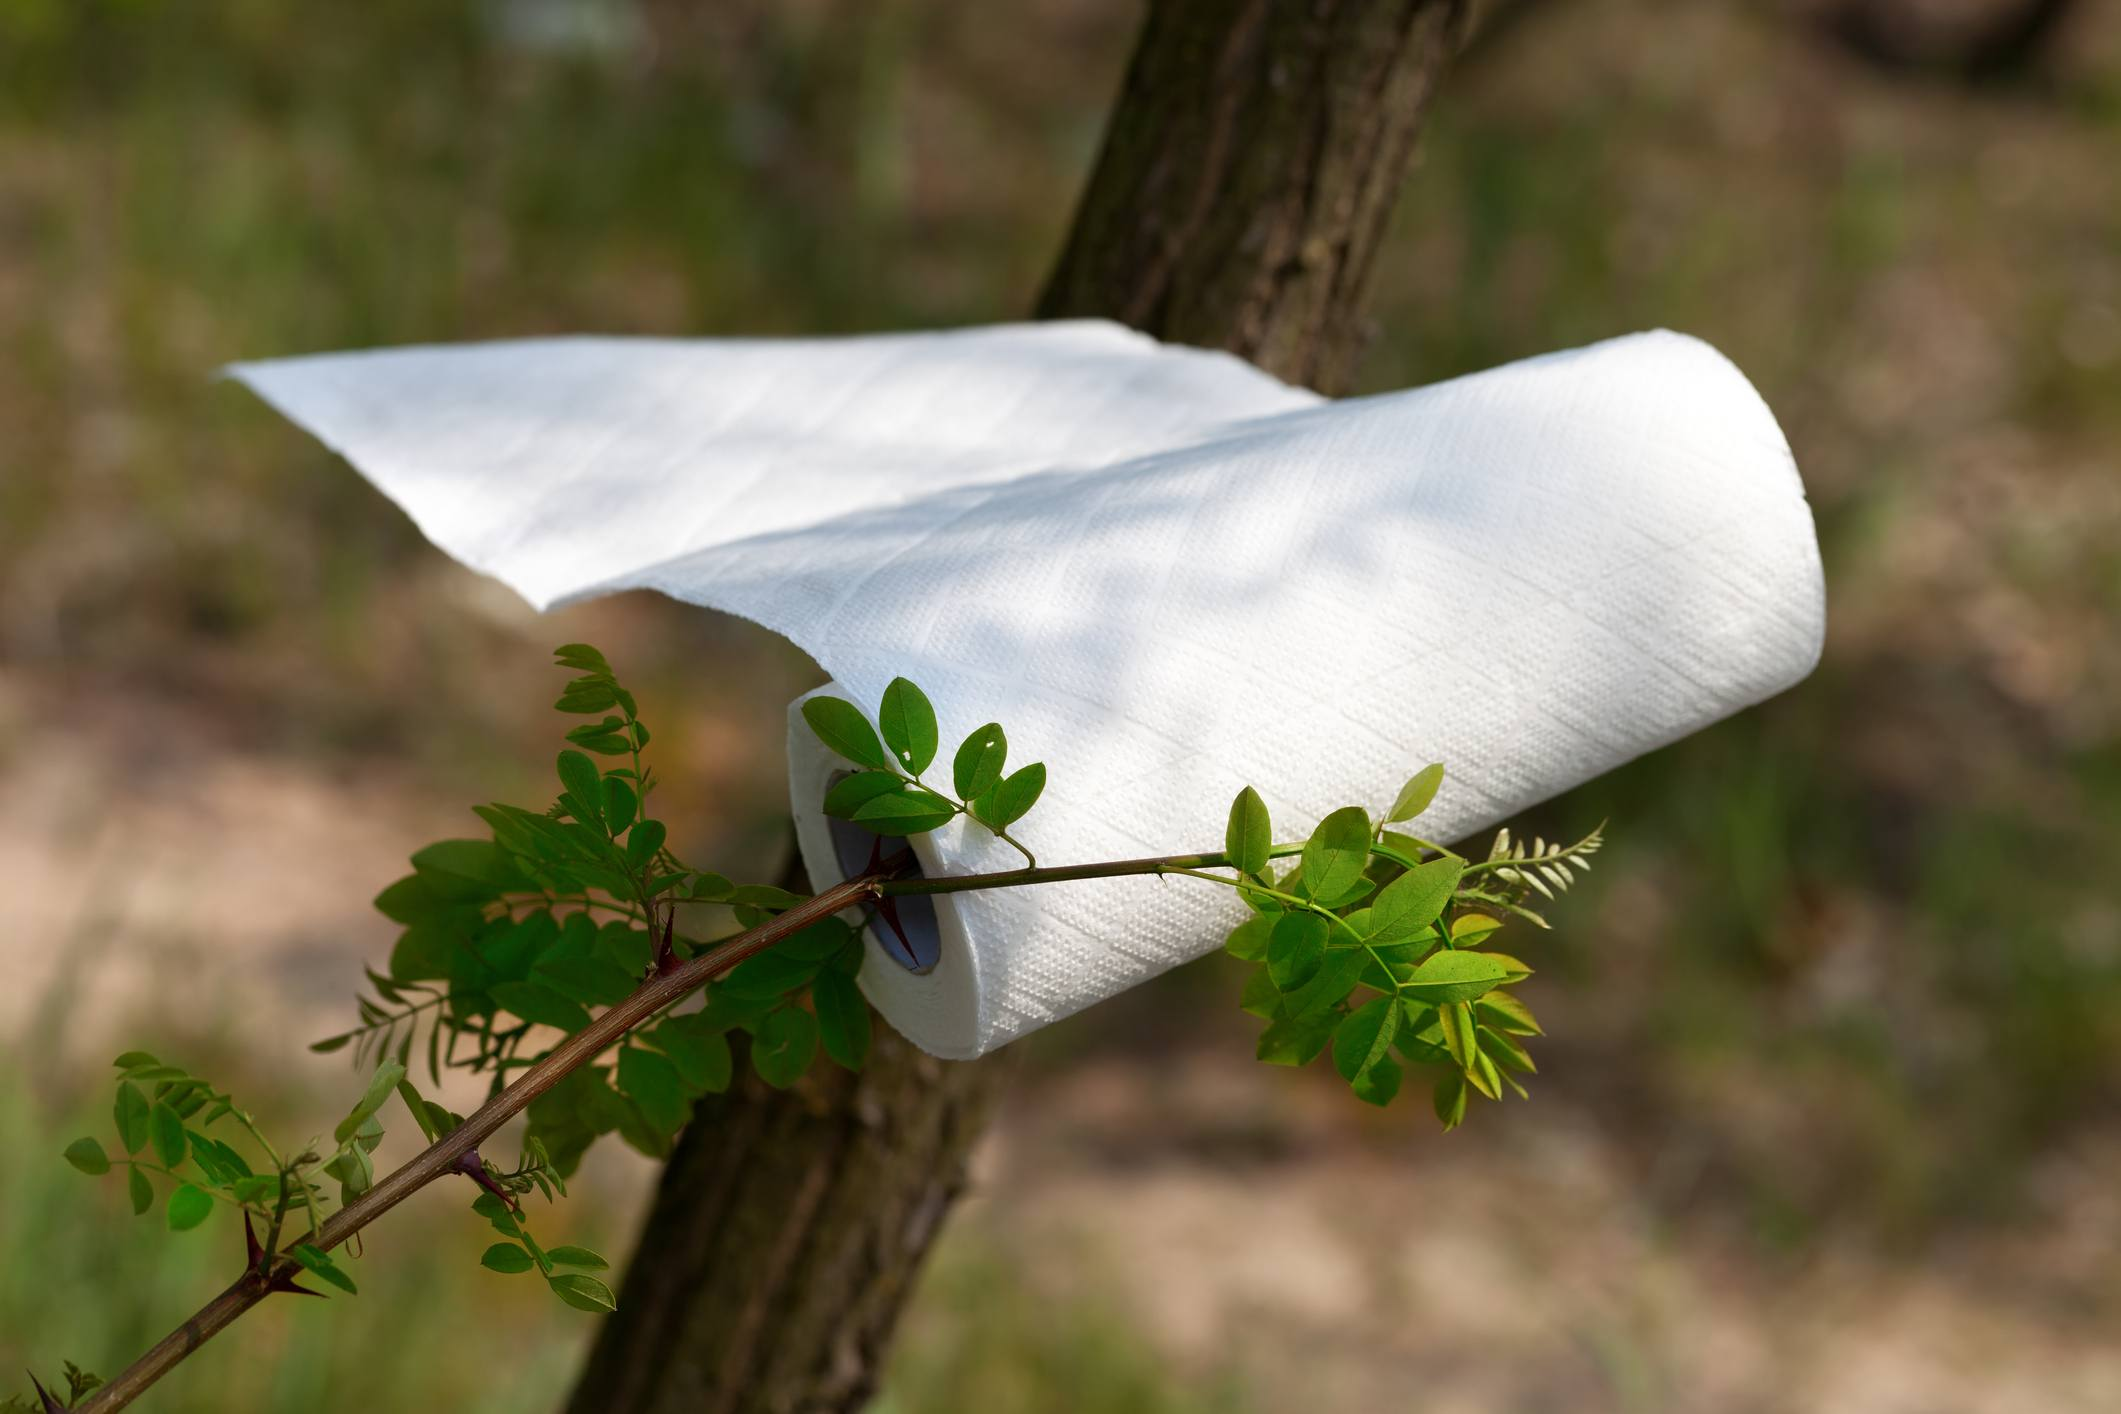 Paper towel roll waving in the wind in forest at sun day